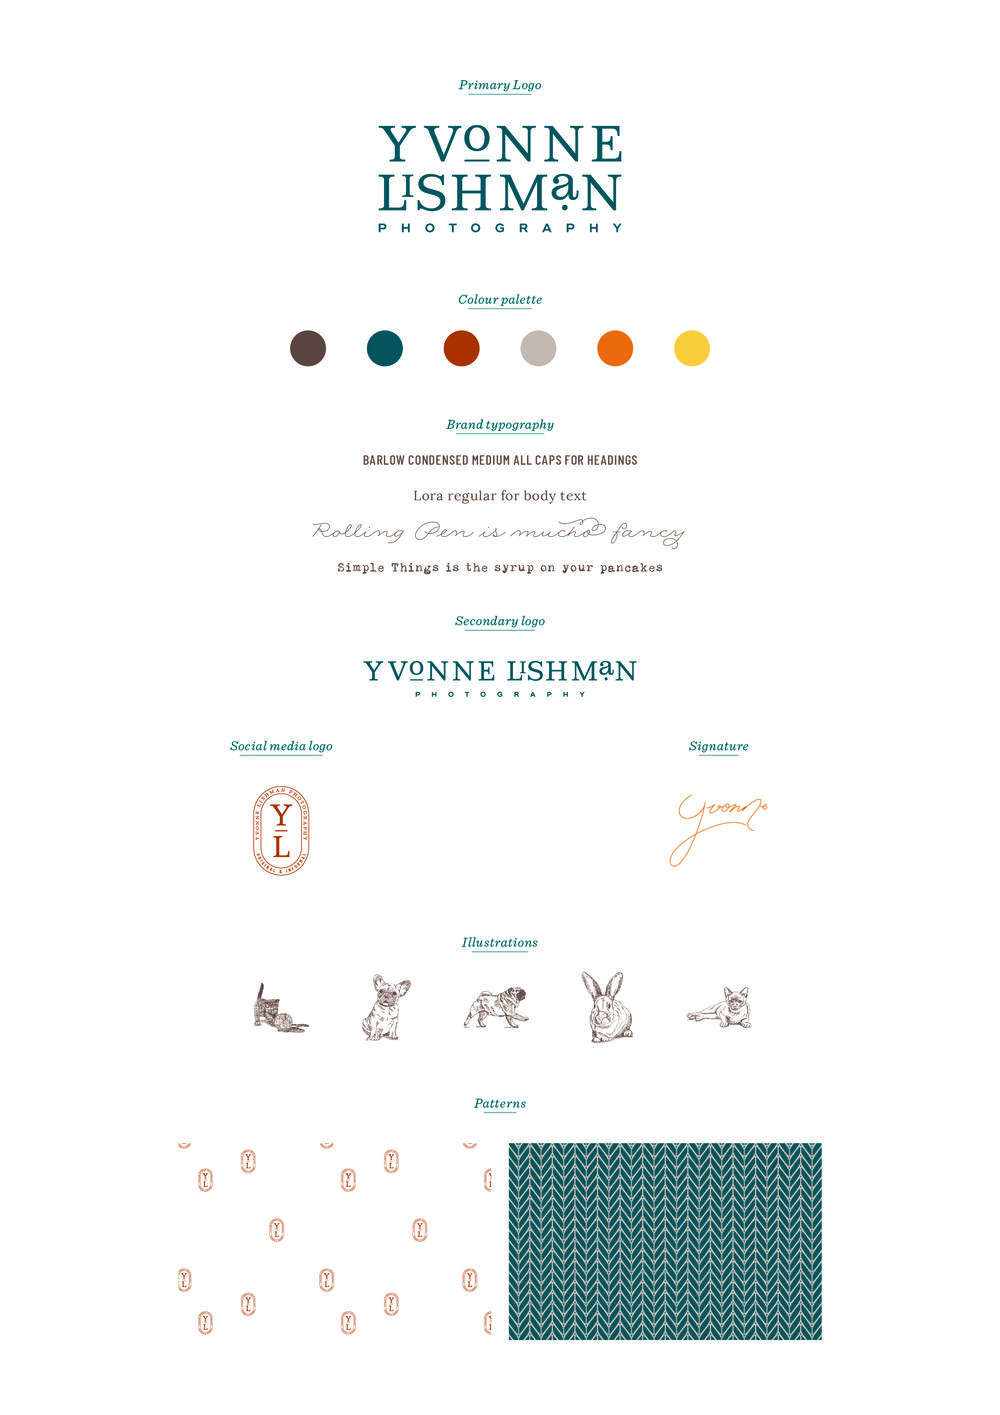 Yvonne Lishman Photography logo design and brand identity by Ditto Creative, branding agency Kent